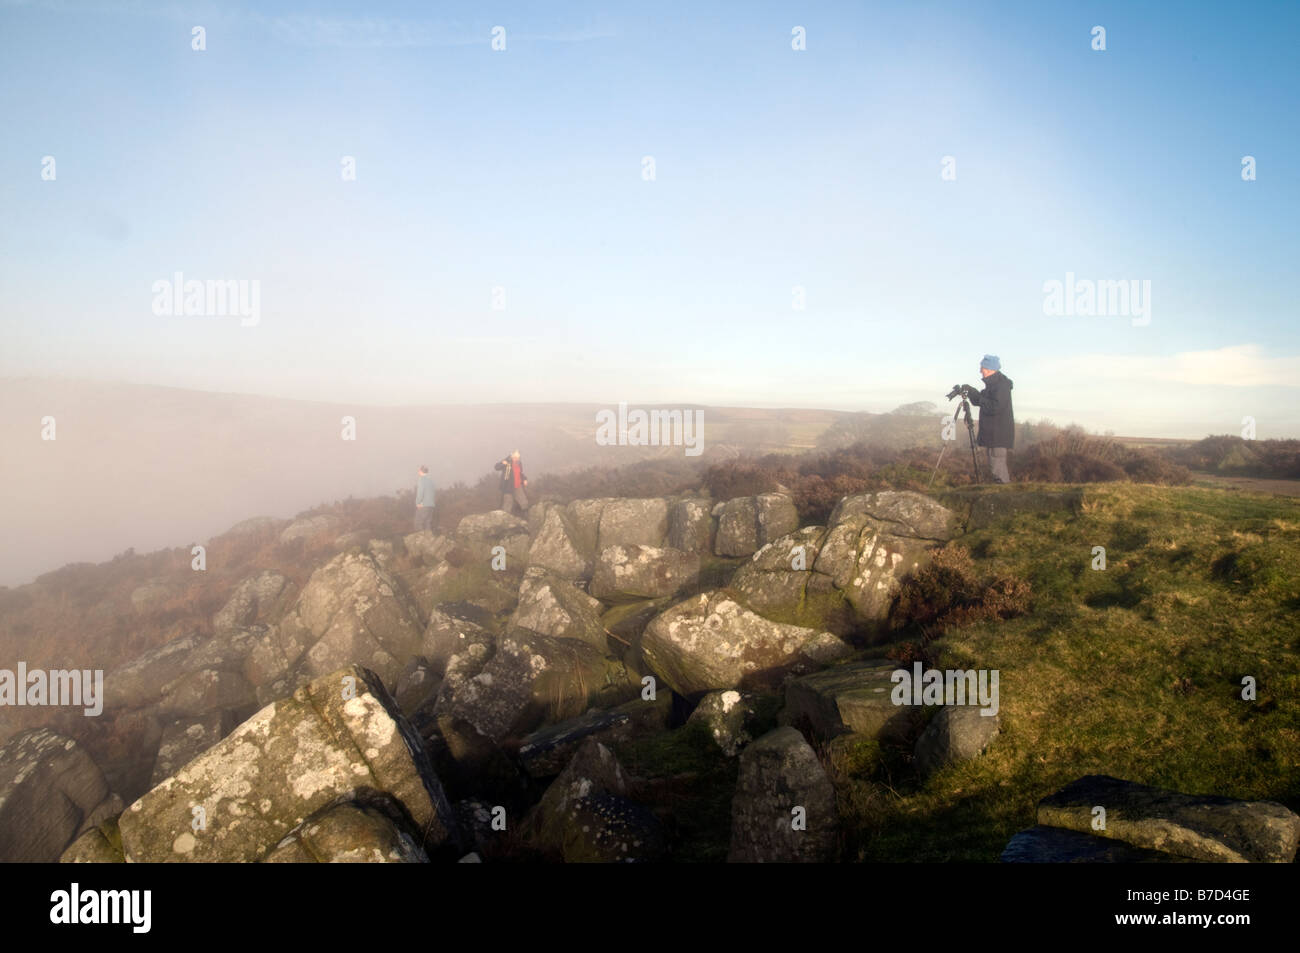 Photographers taking pictures on a misty morning on Curbar Edge Peak District Derbyshire England - Stock Image